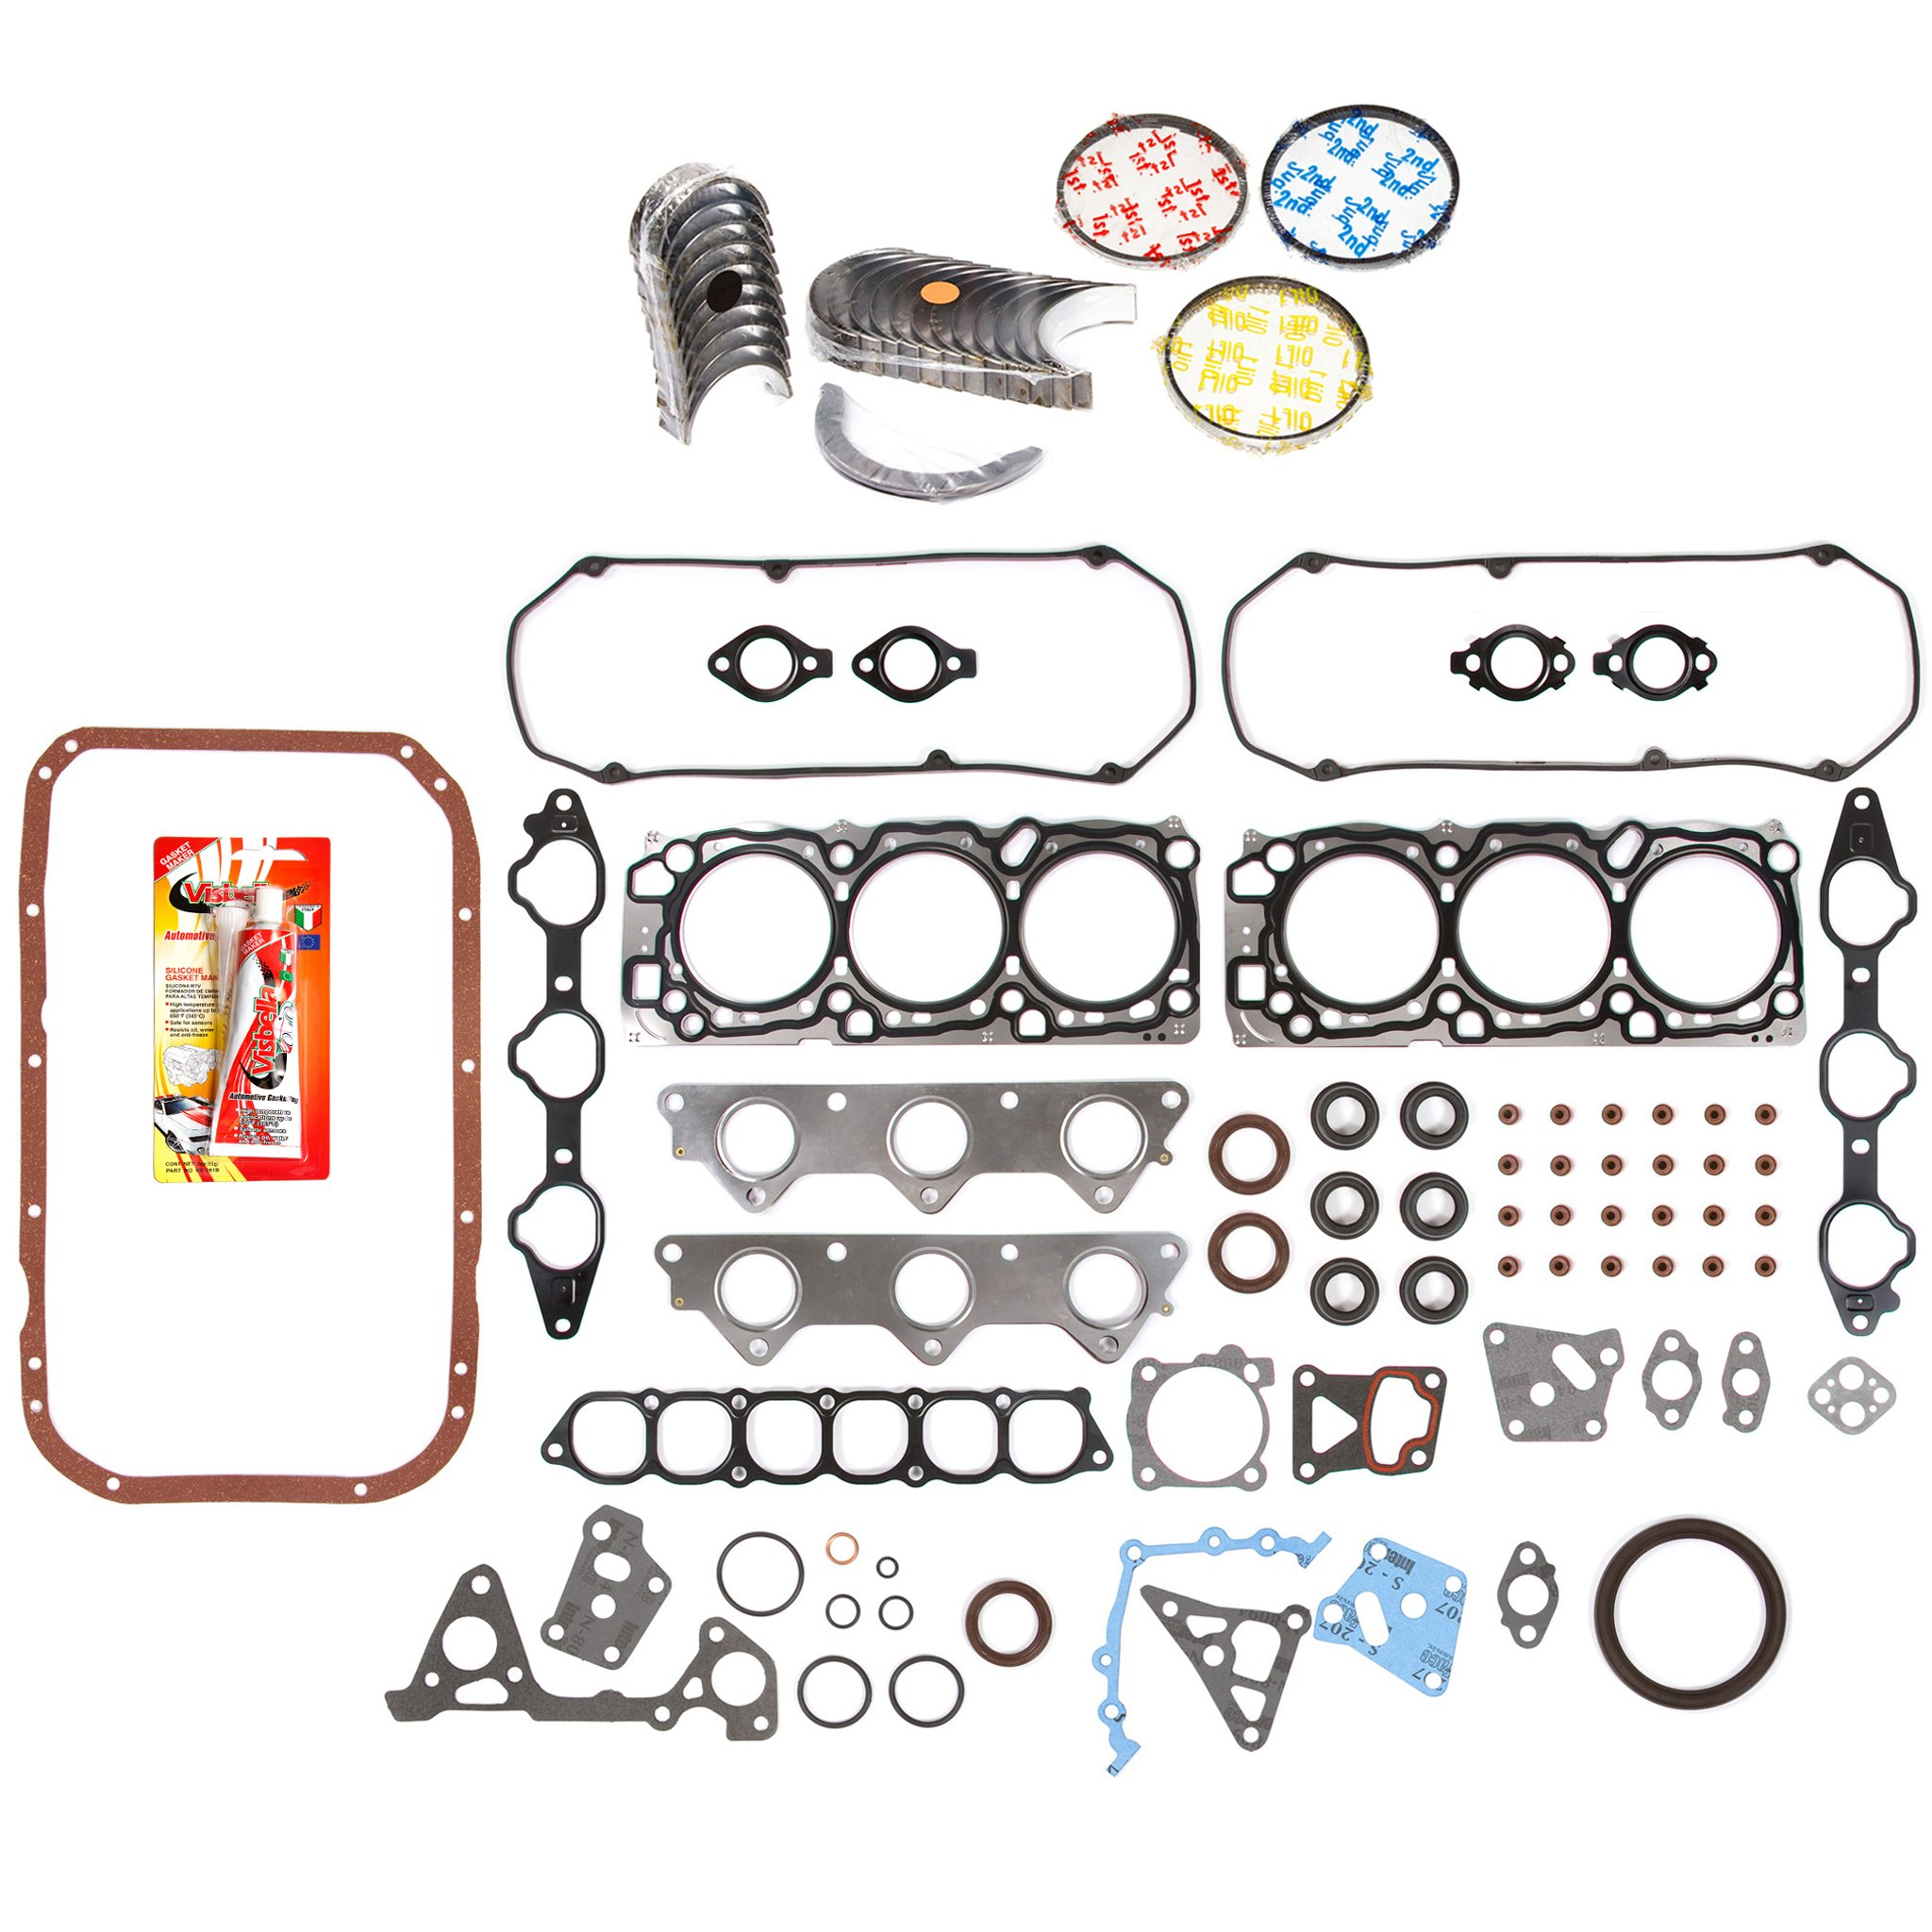 Domestic Gaskets Engine Rering Kit FSBRR5018EVE\0\0\0 97-04 Mitsubishi Montero Sport Diamante 3.5 6G74 Full Gasket Set, Standard Size Main Rod Bearings, Standard Size Piston Rings